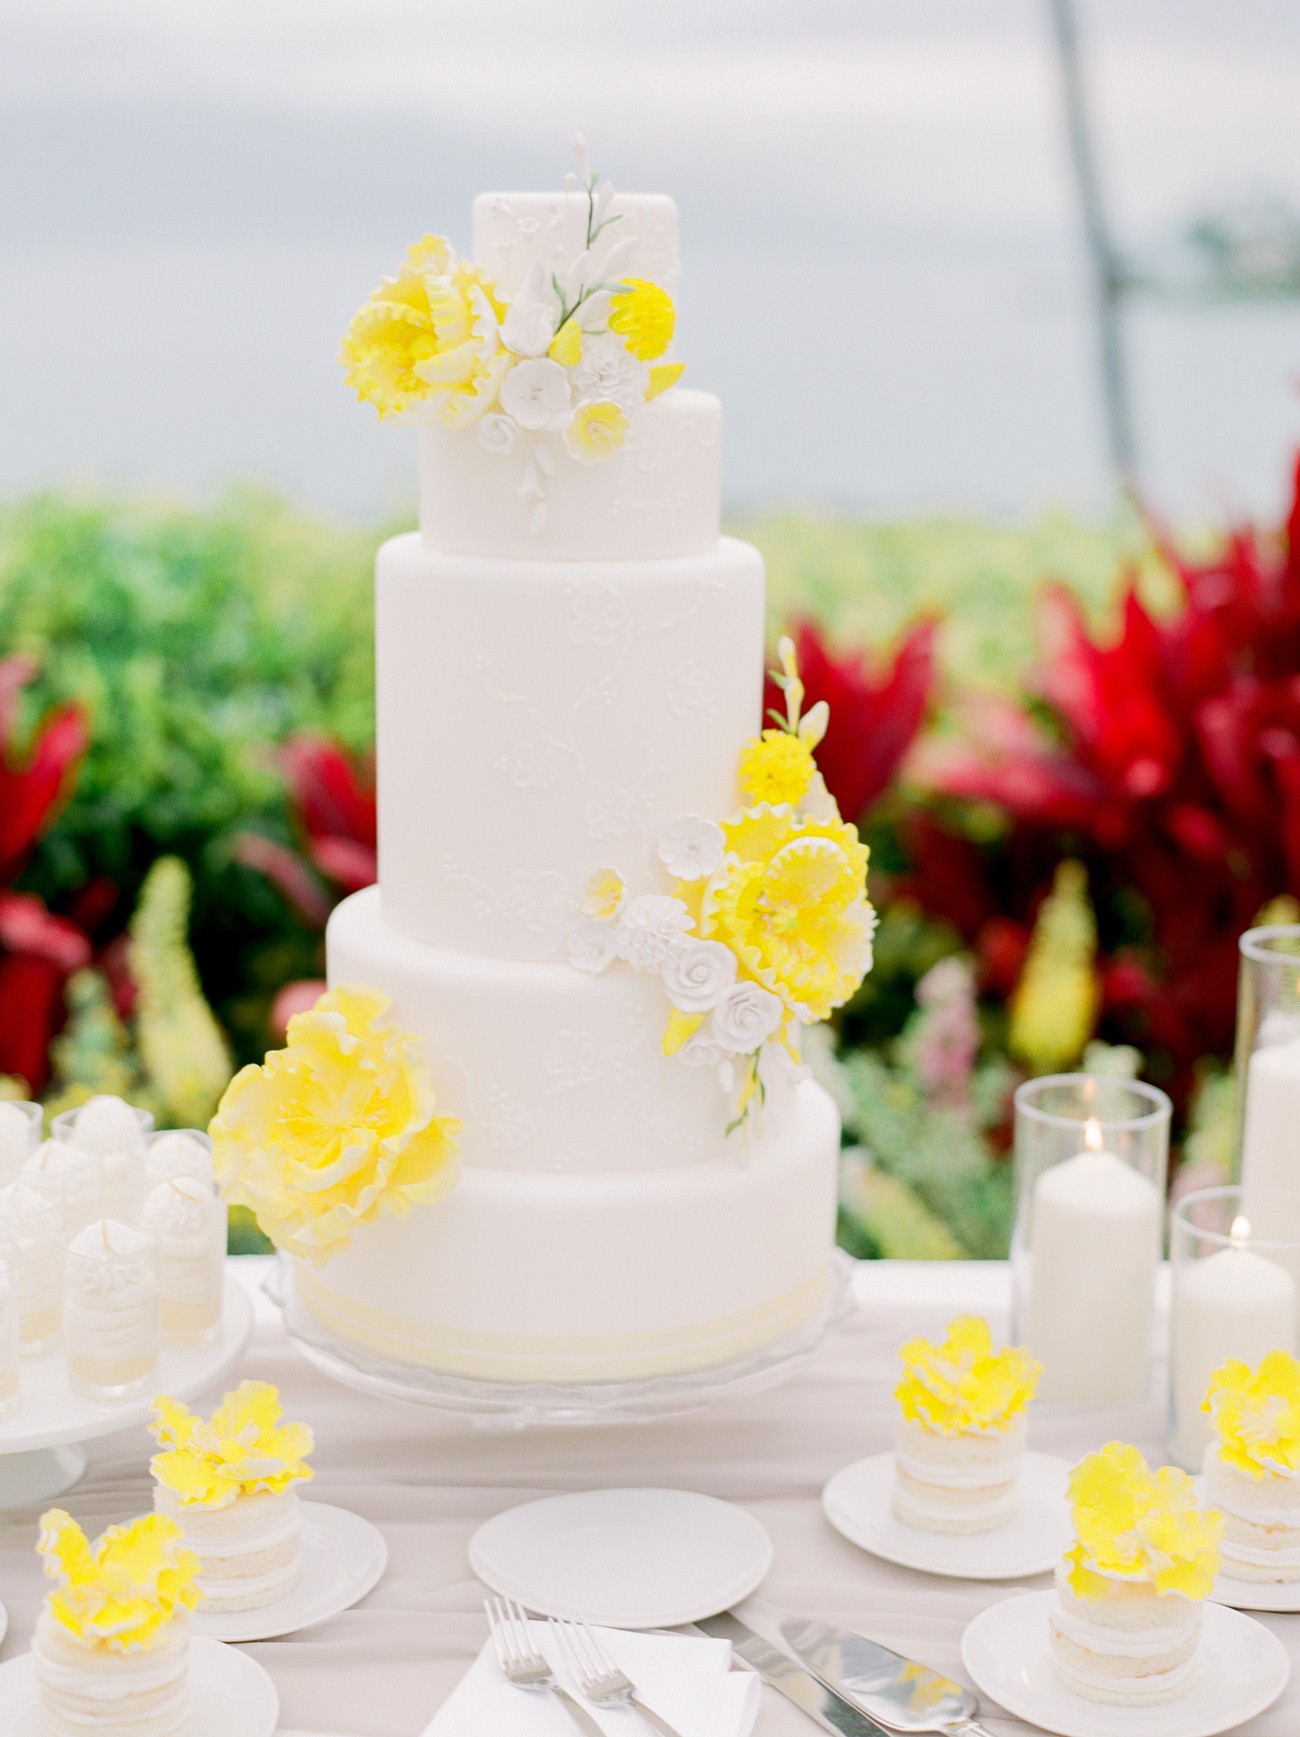 five-tiered white fondant wedding cake with yellow flower decor